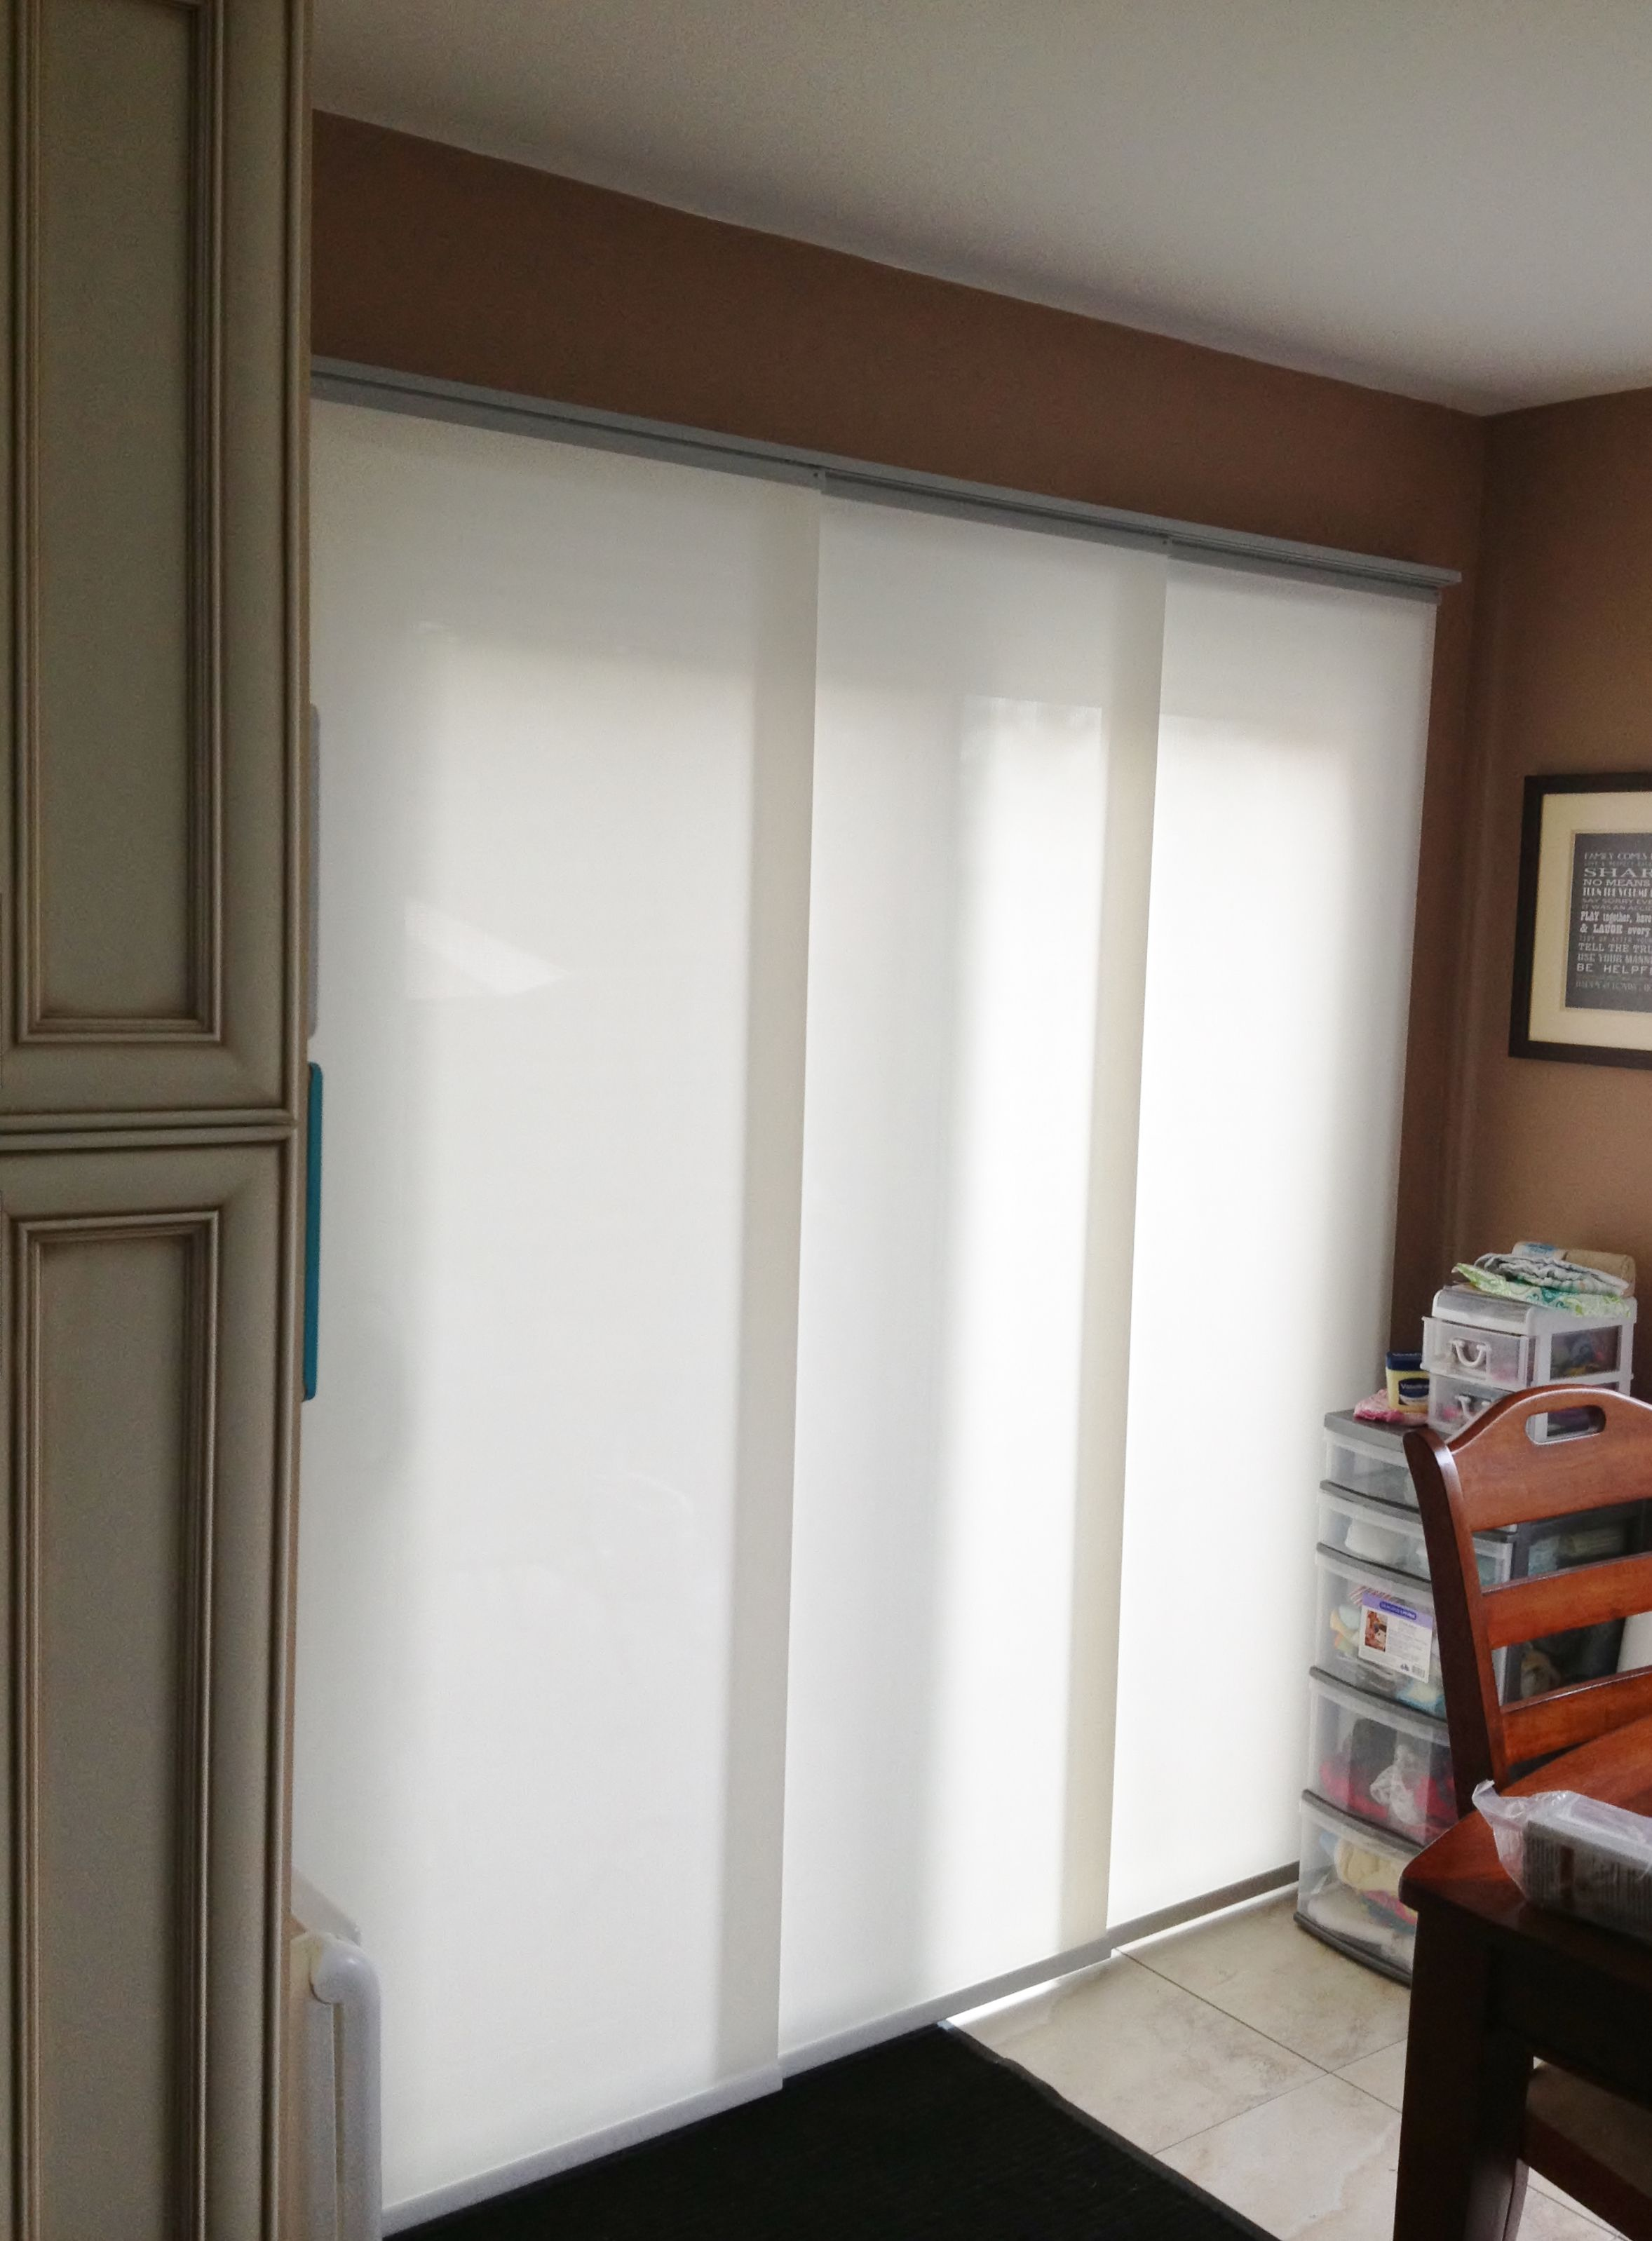 Panel Tracks are another good window covering for patio doors